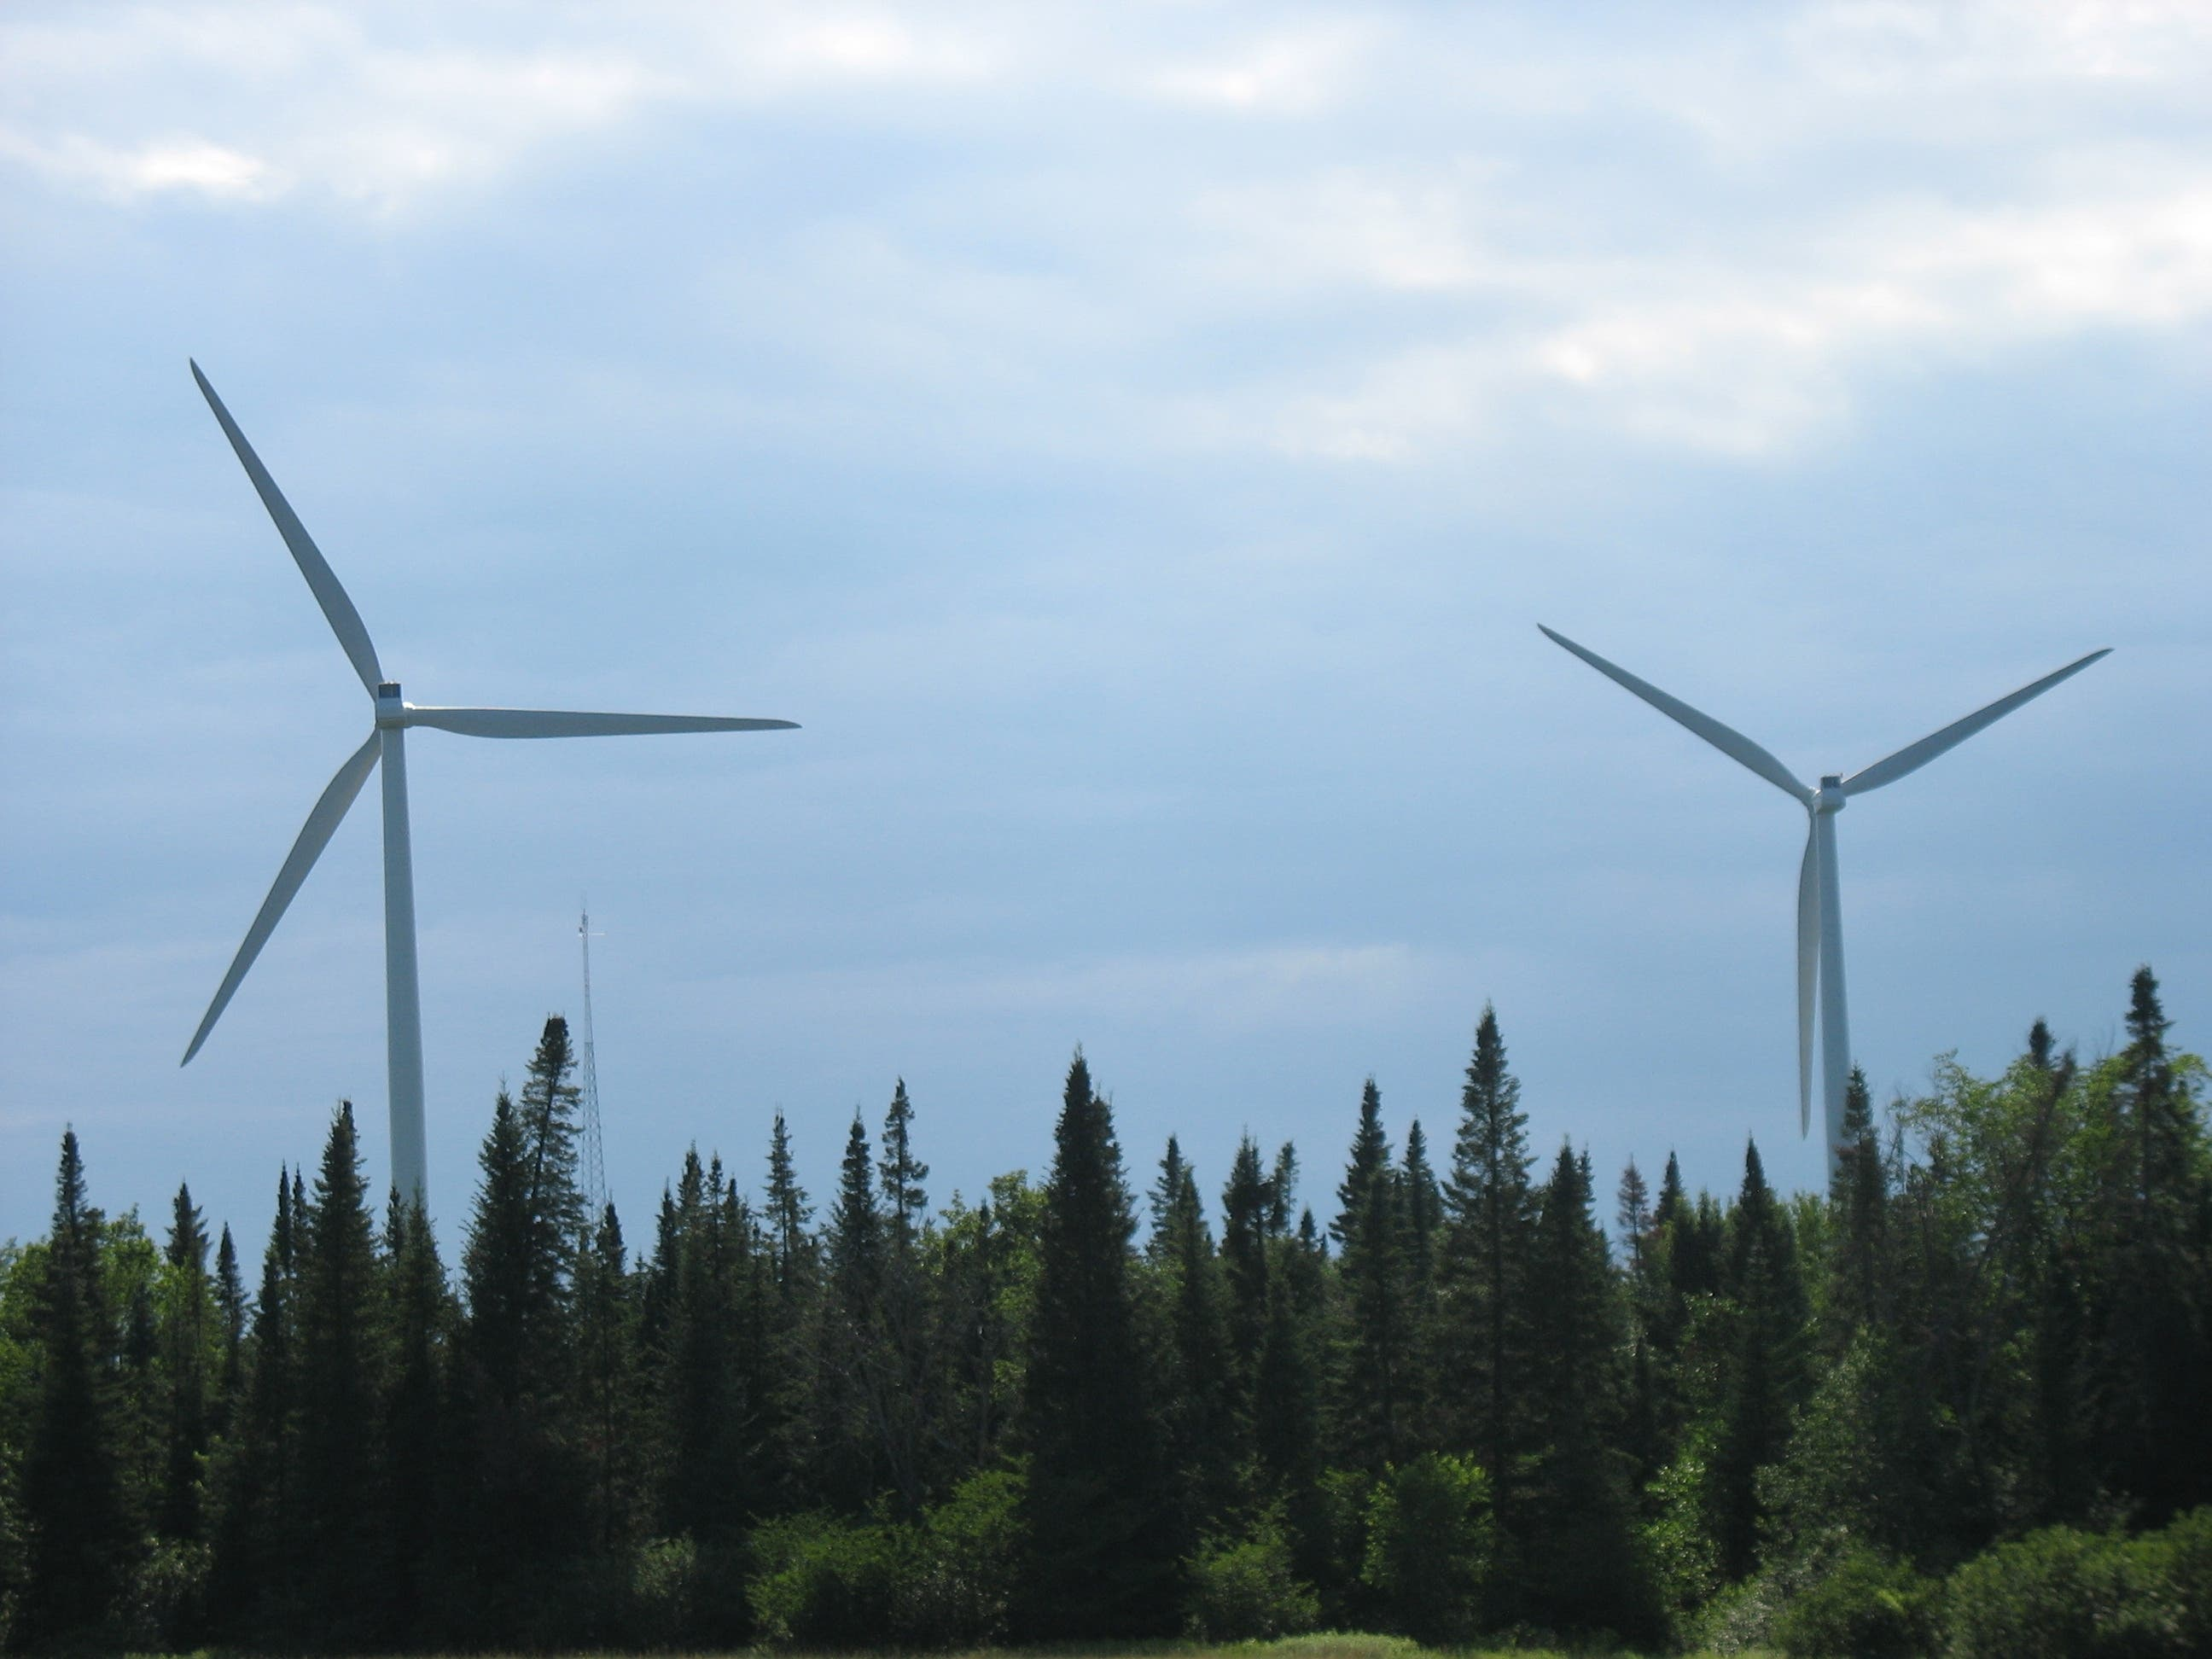 Wind turbines among trees